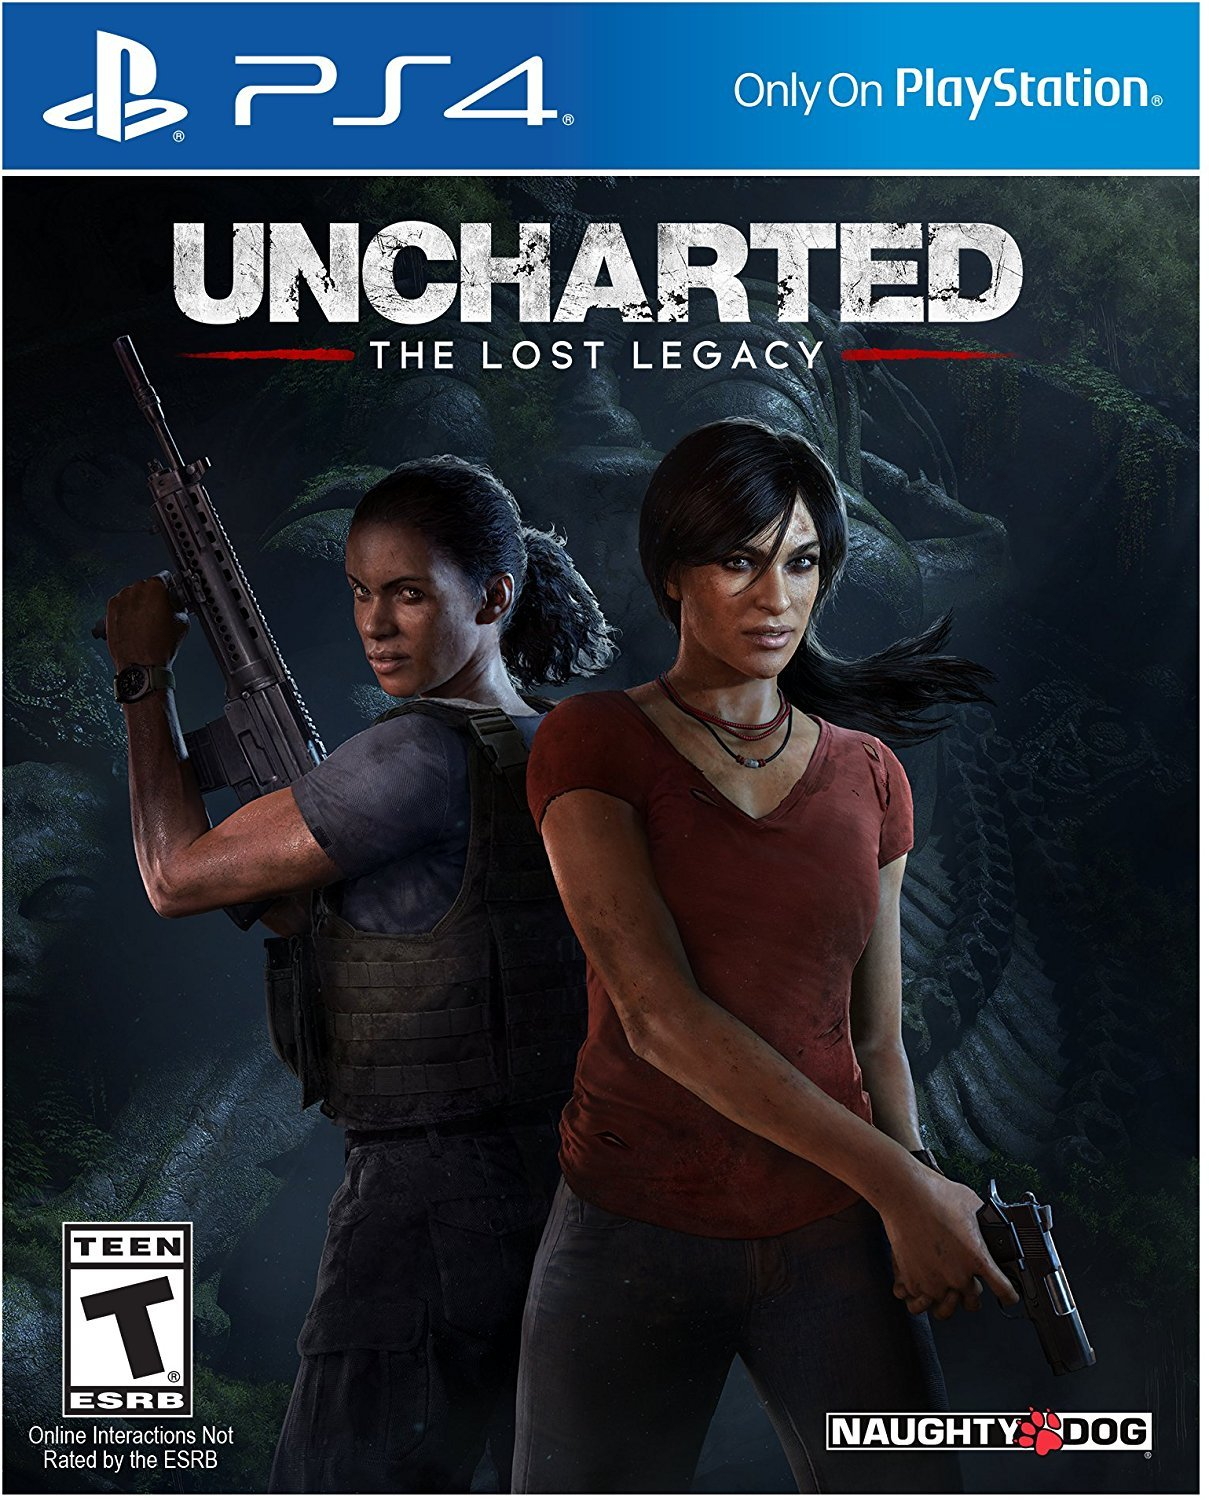 uncharted 5 ps4 price